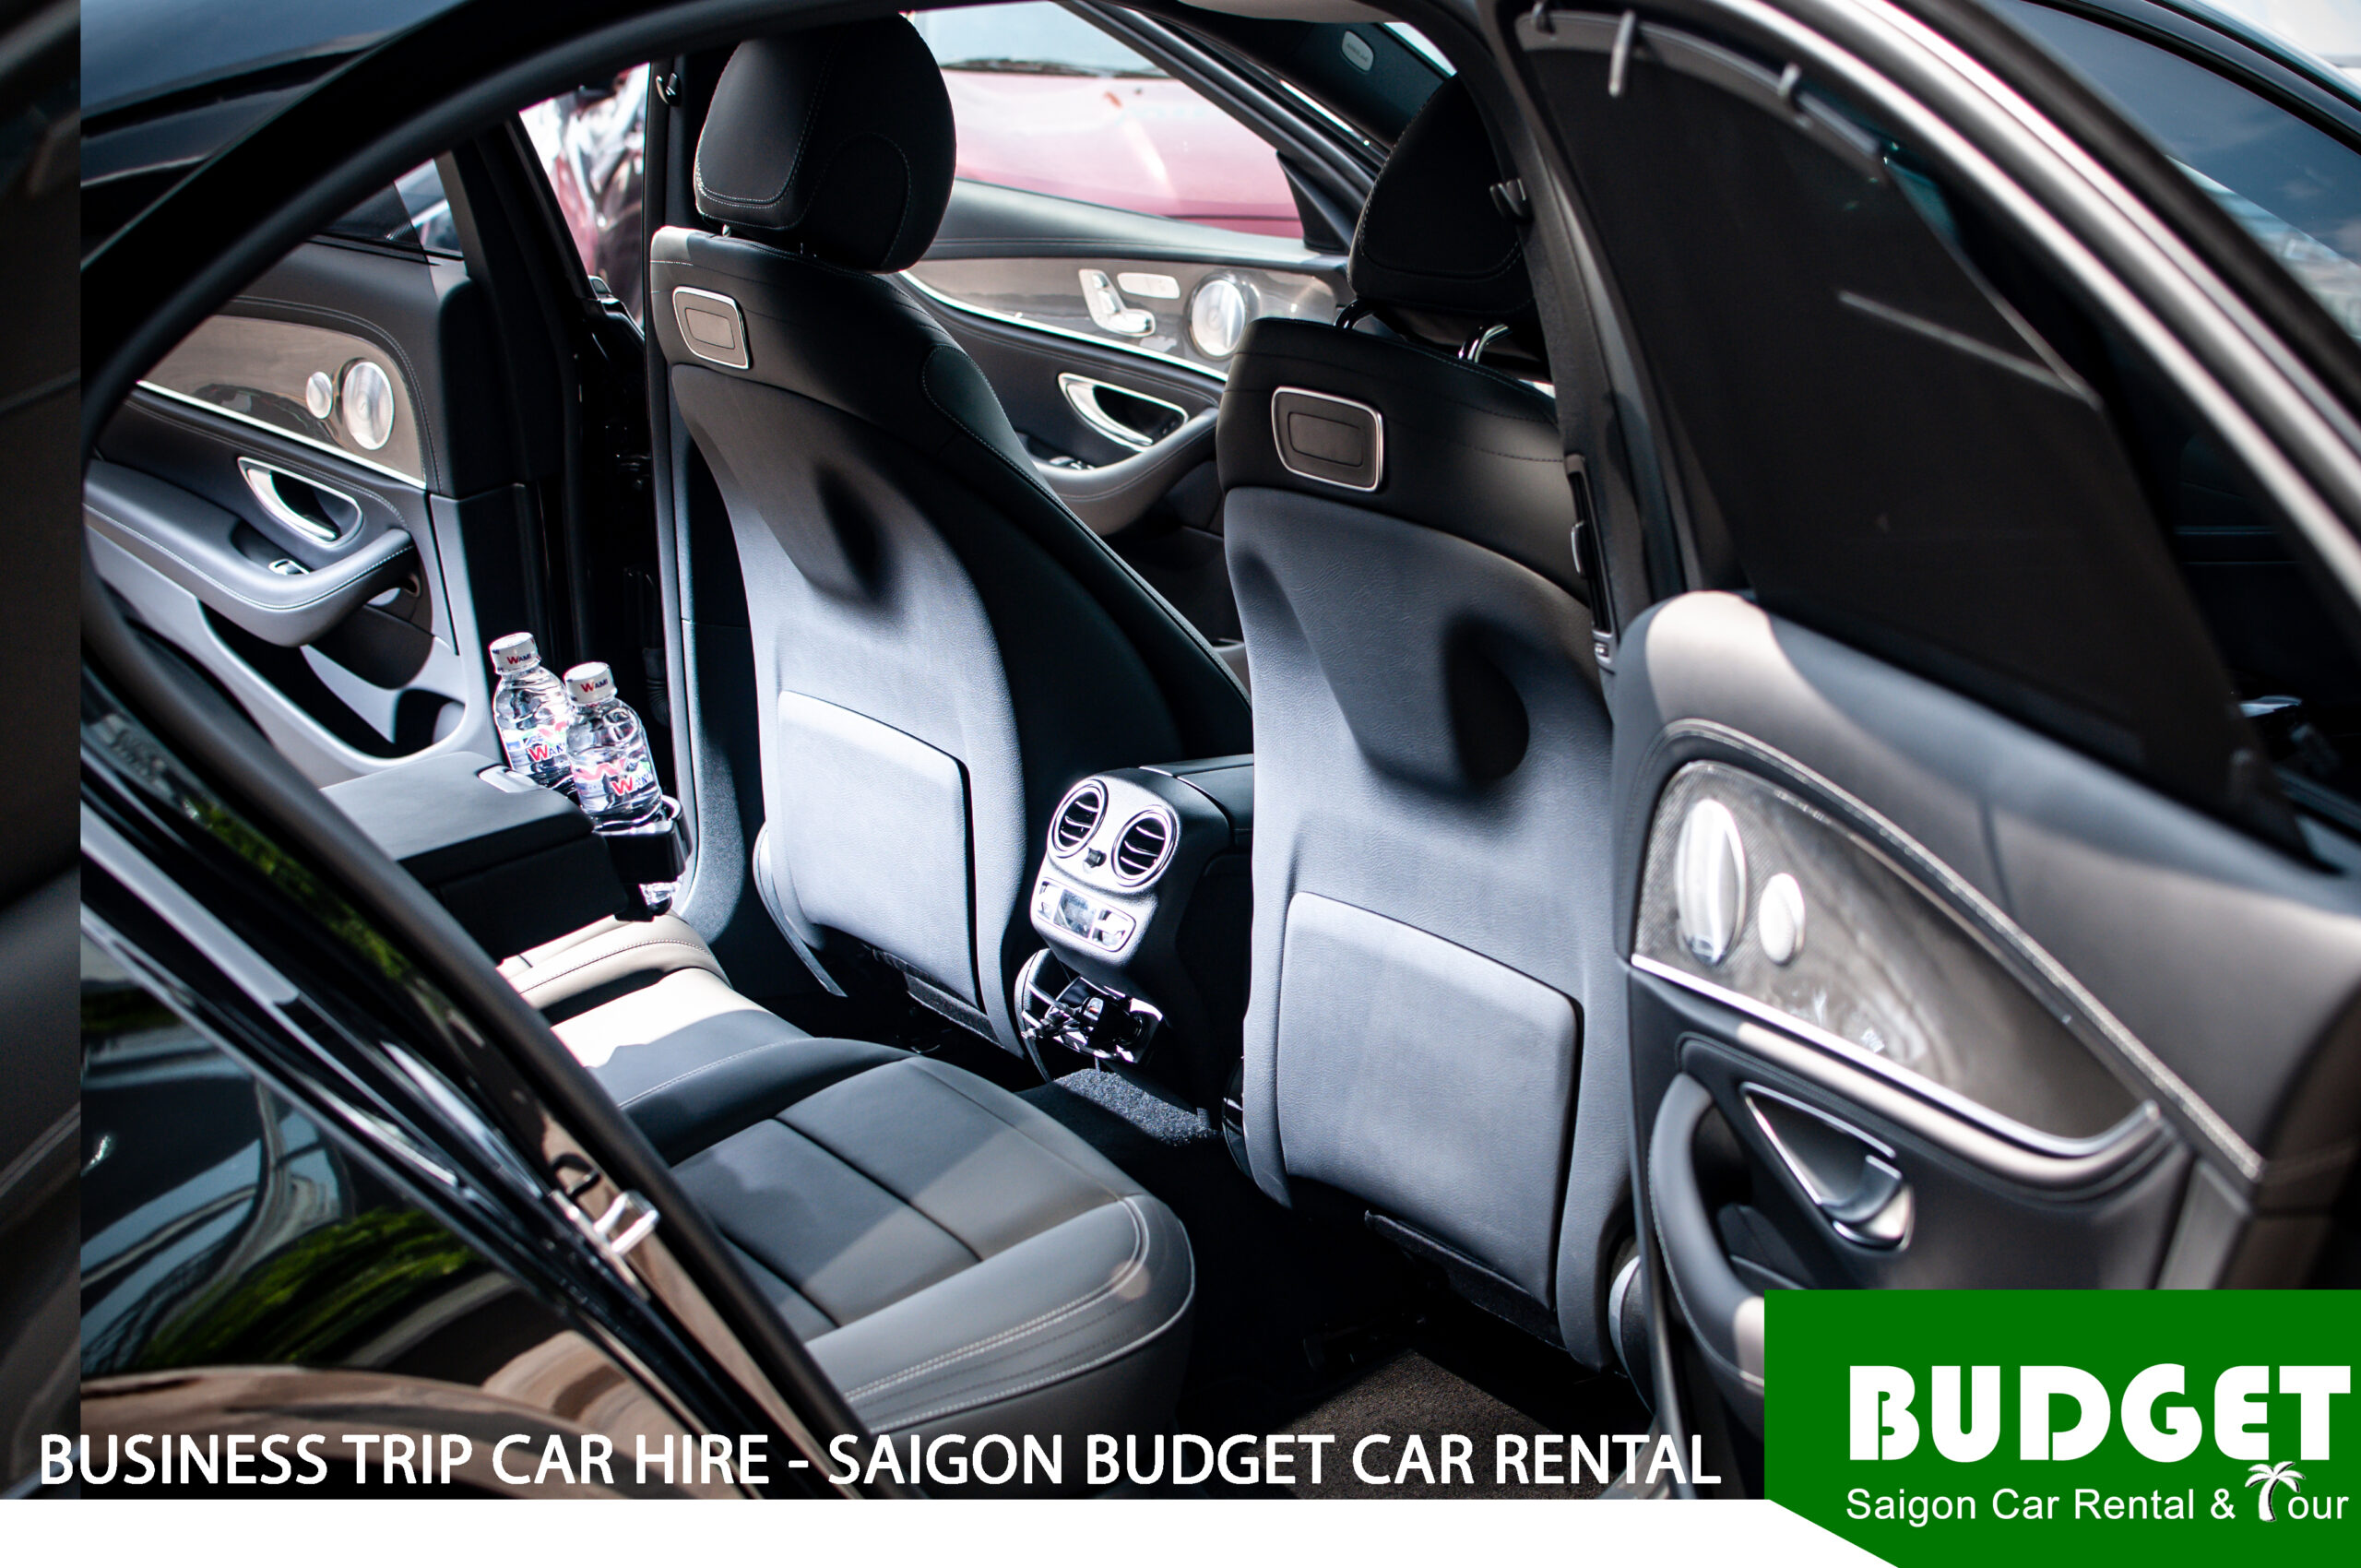 Business Trip Car Hire, Travel - Ho Chi Minh City